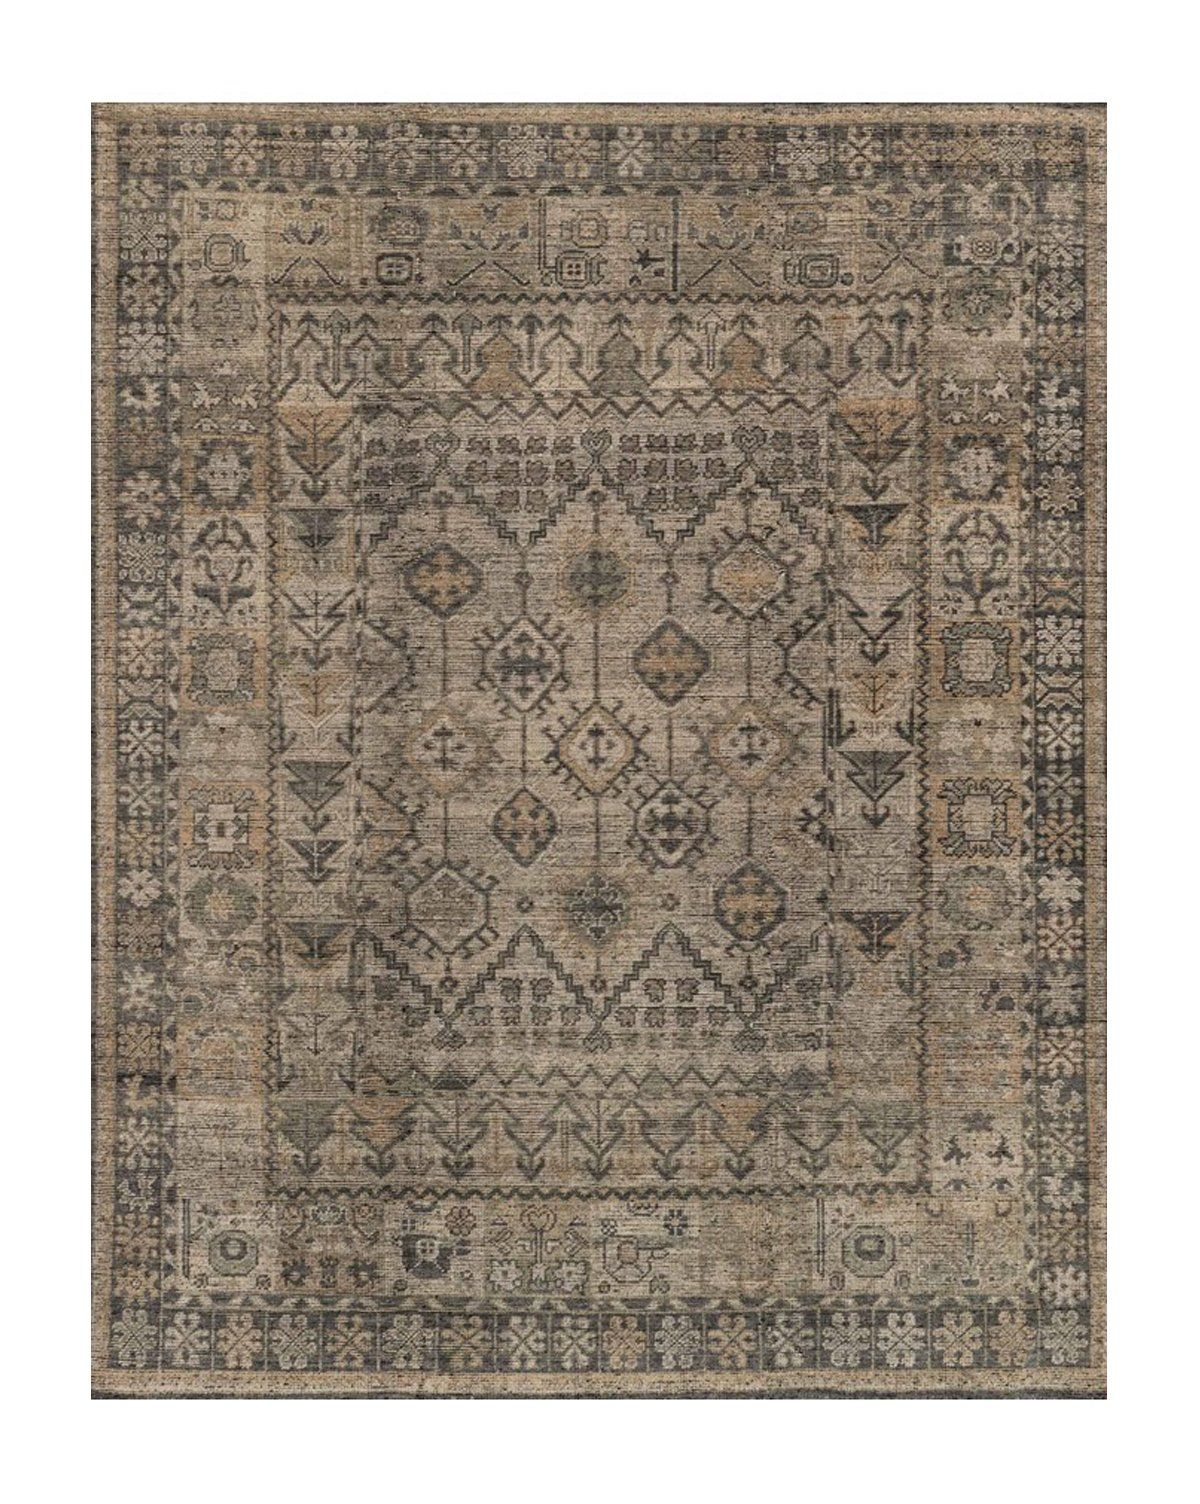 Seville Hand Knotted Rug In 2020 Rugs On Carpet Hand Knotted Rugs Rugs